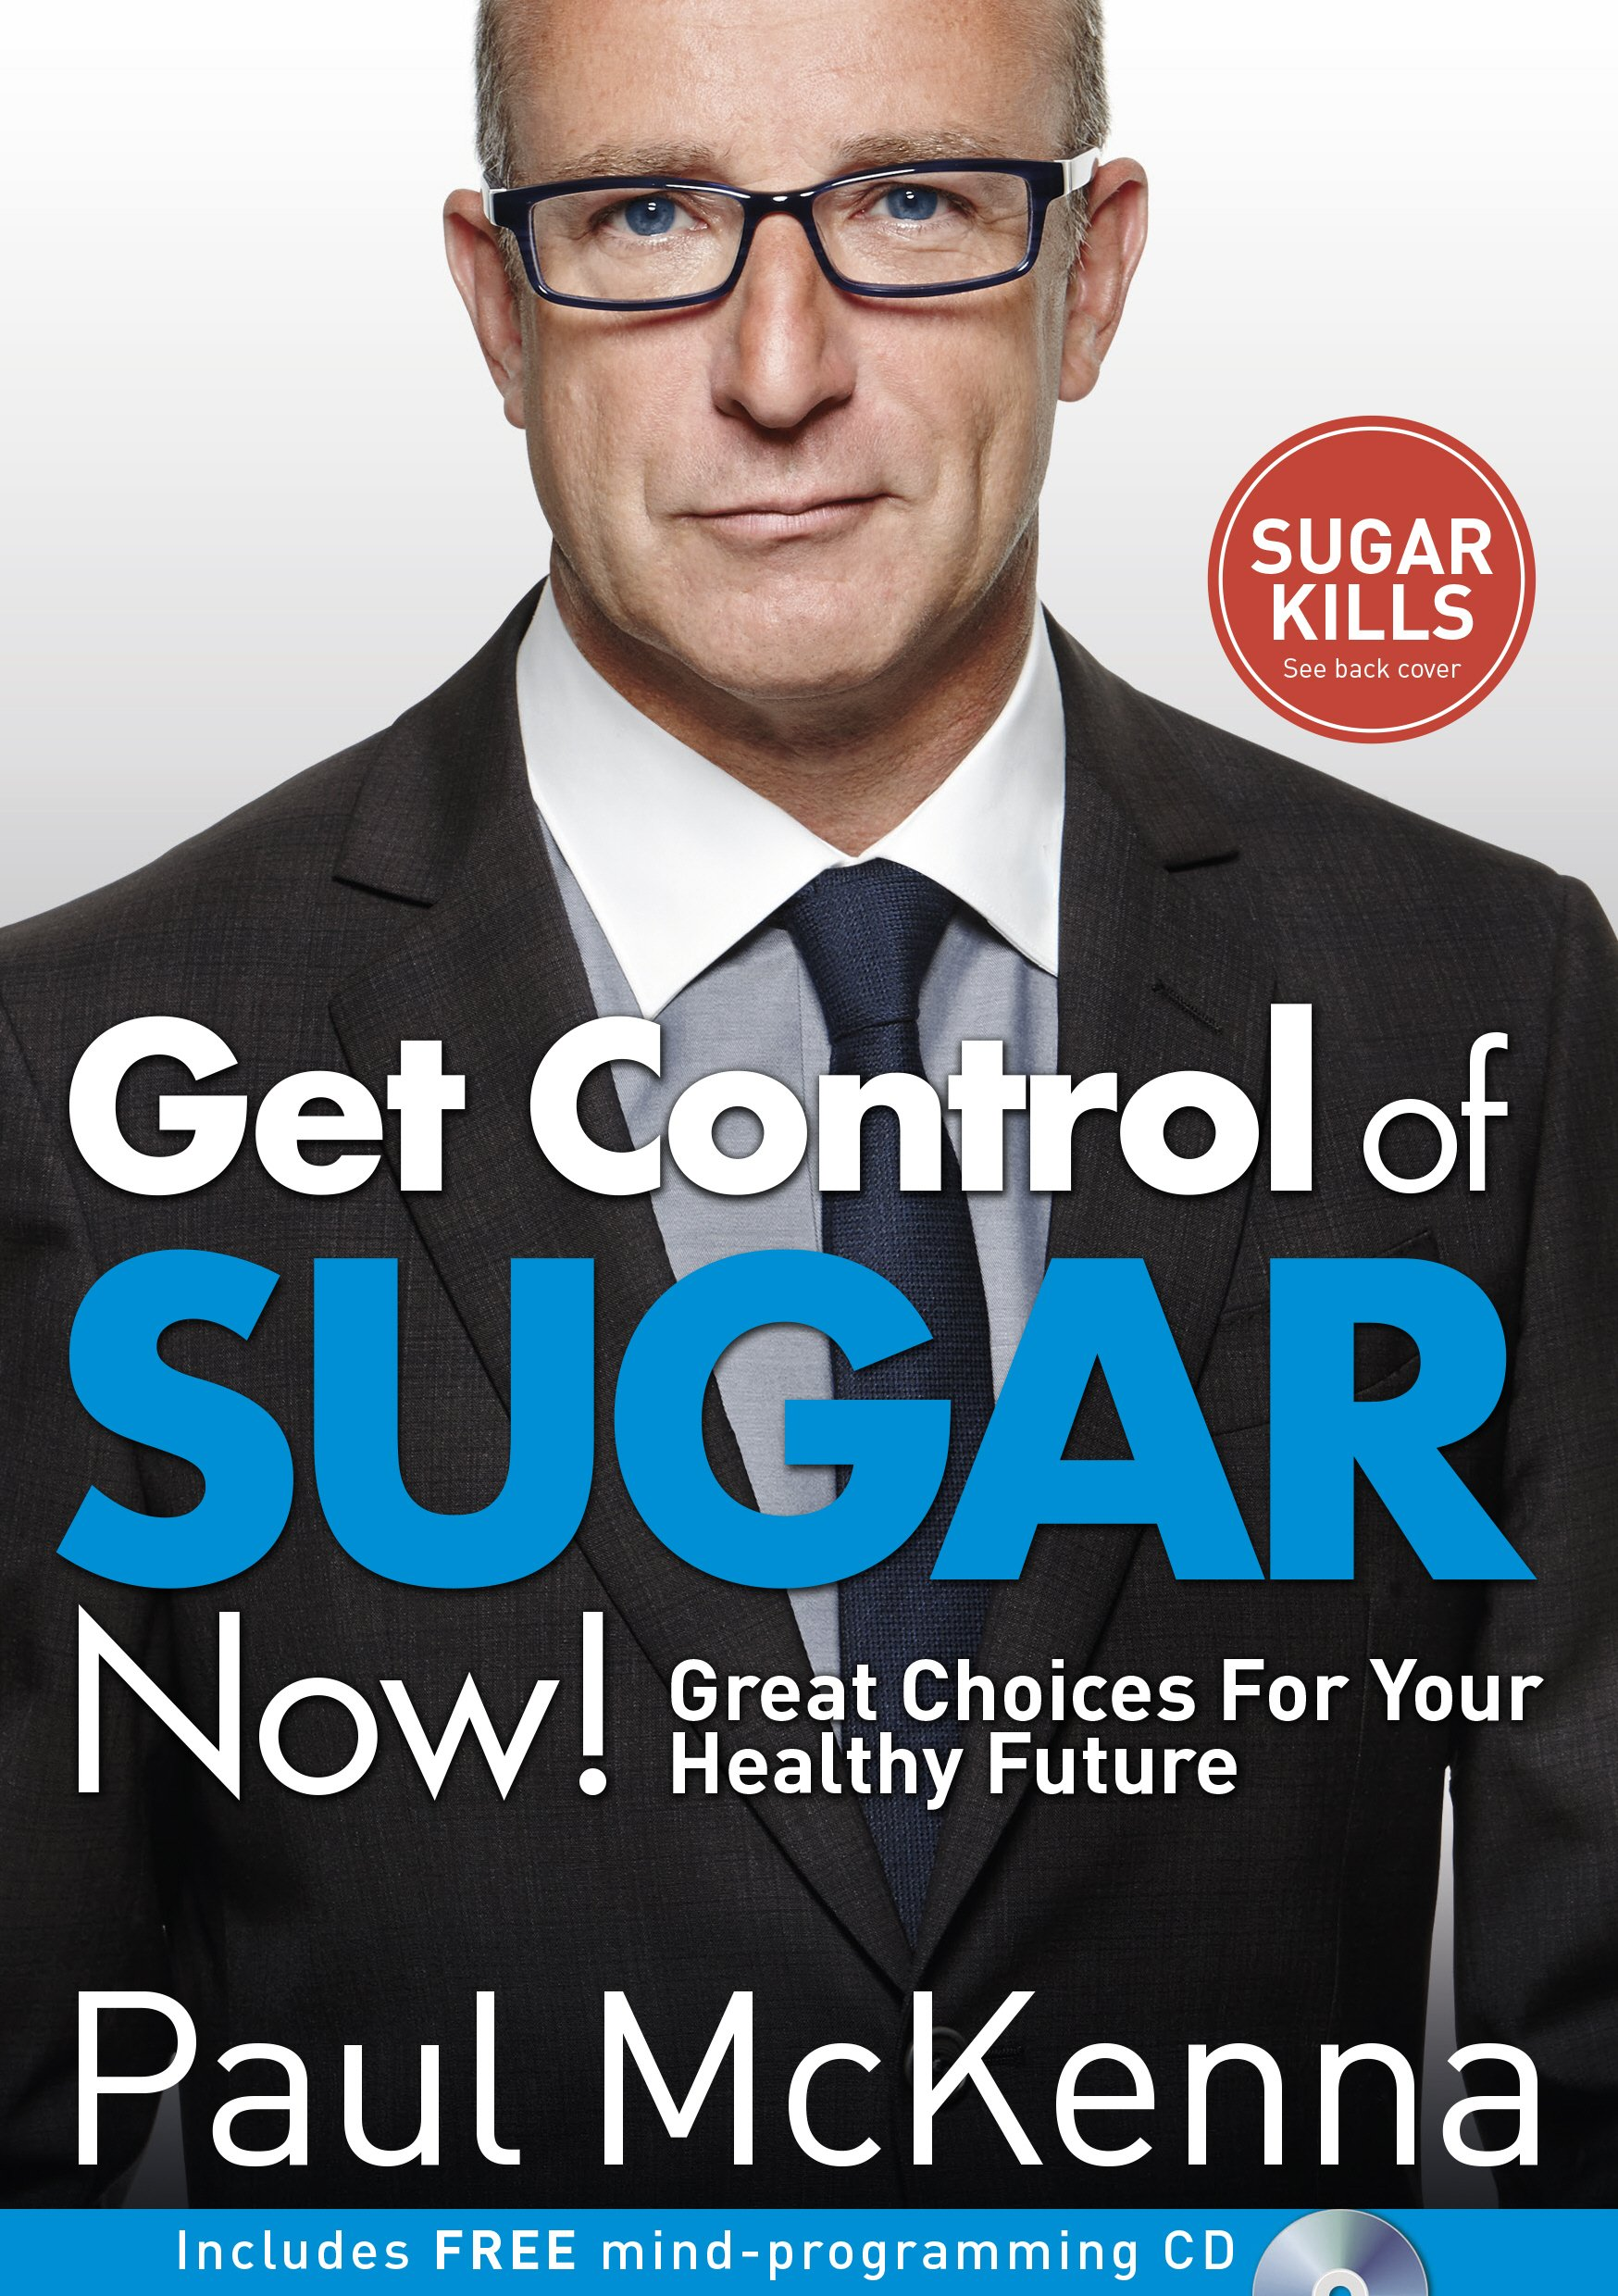 Get Control of Sugar Now!: Great Choices For Your Healthy Future pdf